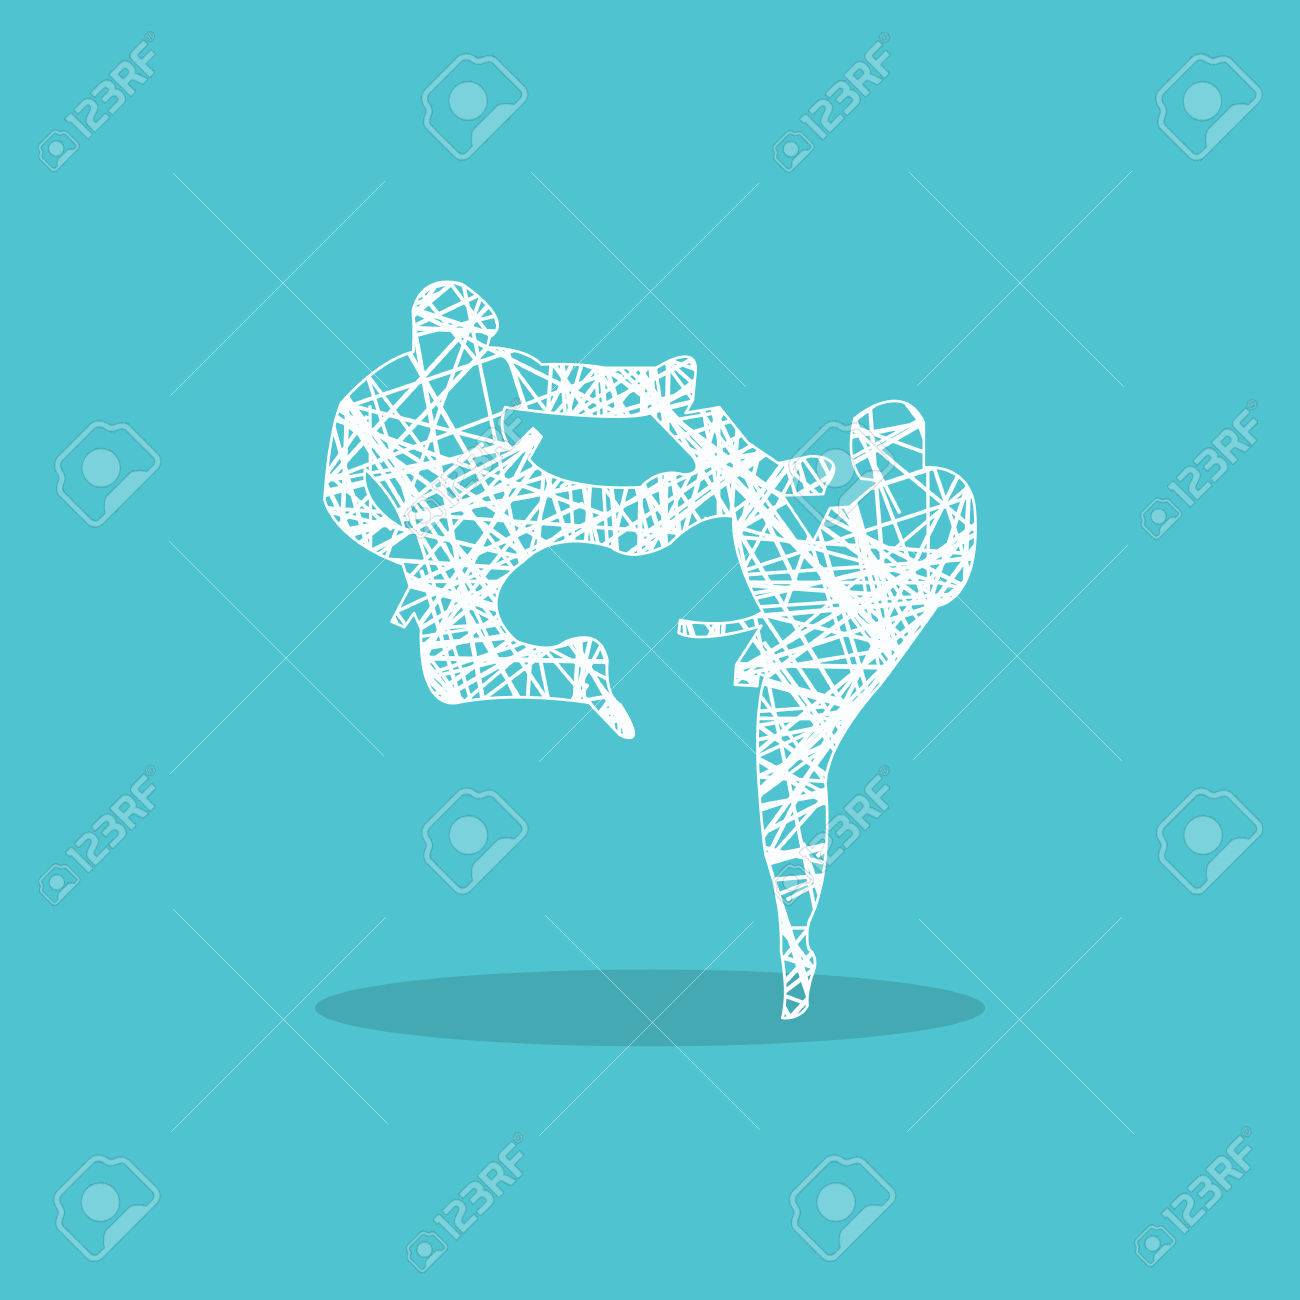 Karate Icon For Web Design Royalty Free Cliparts Vectors And